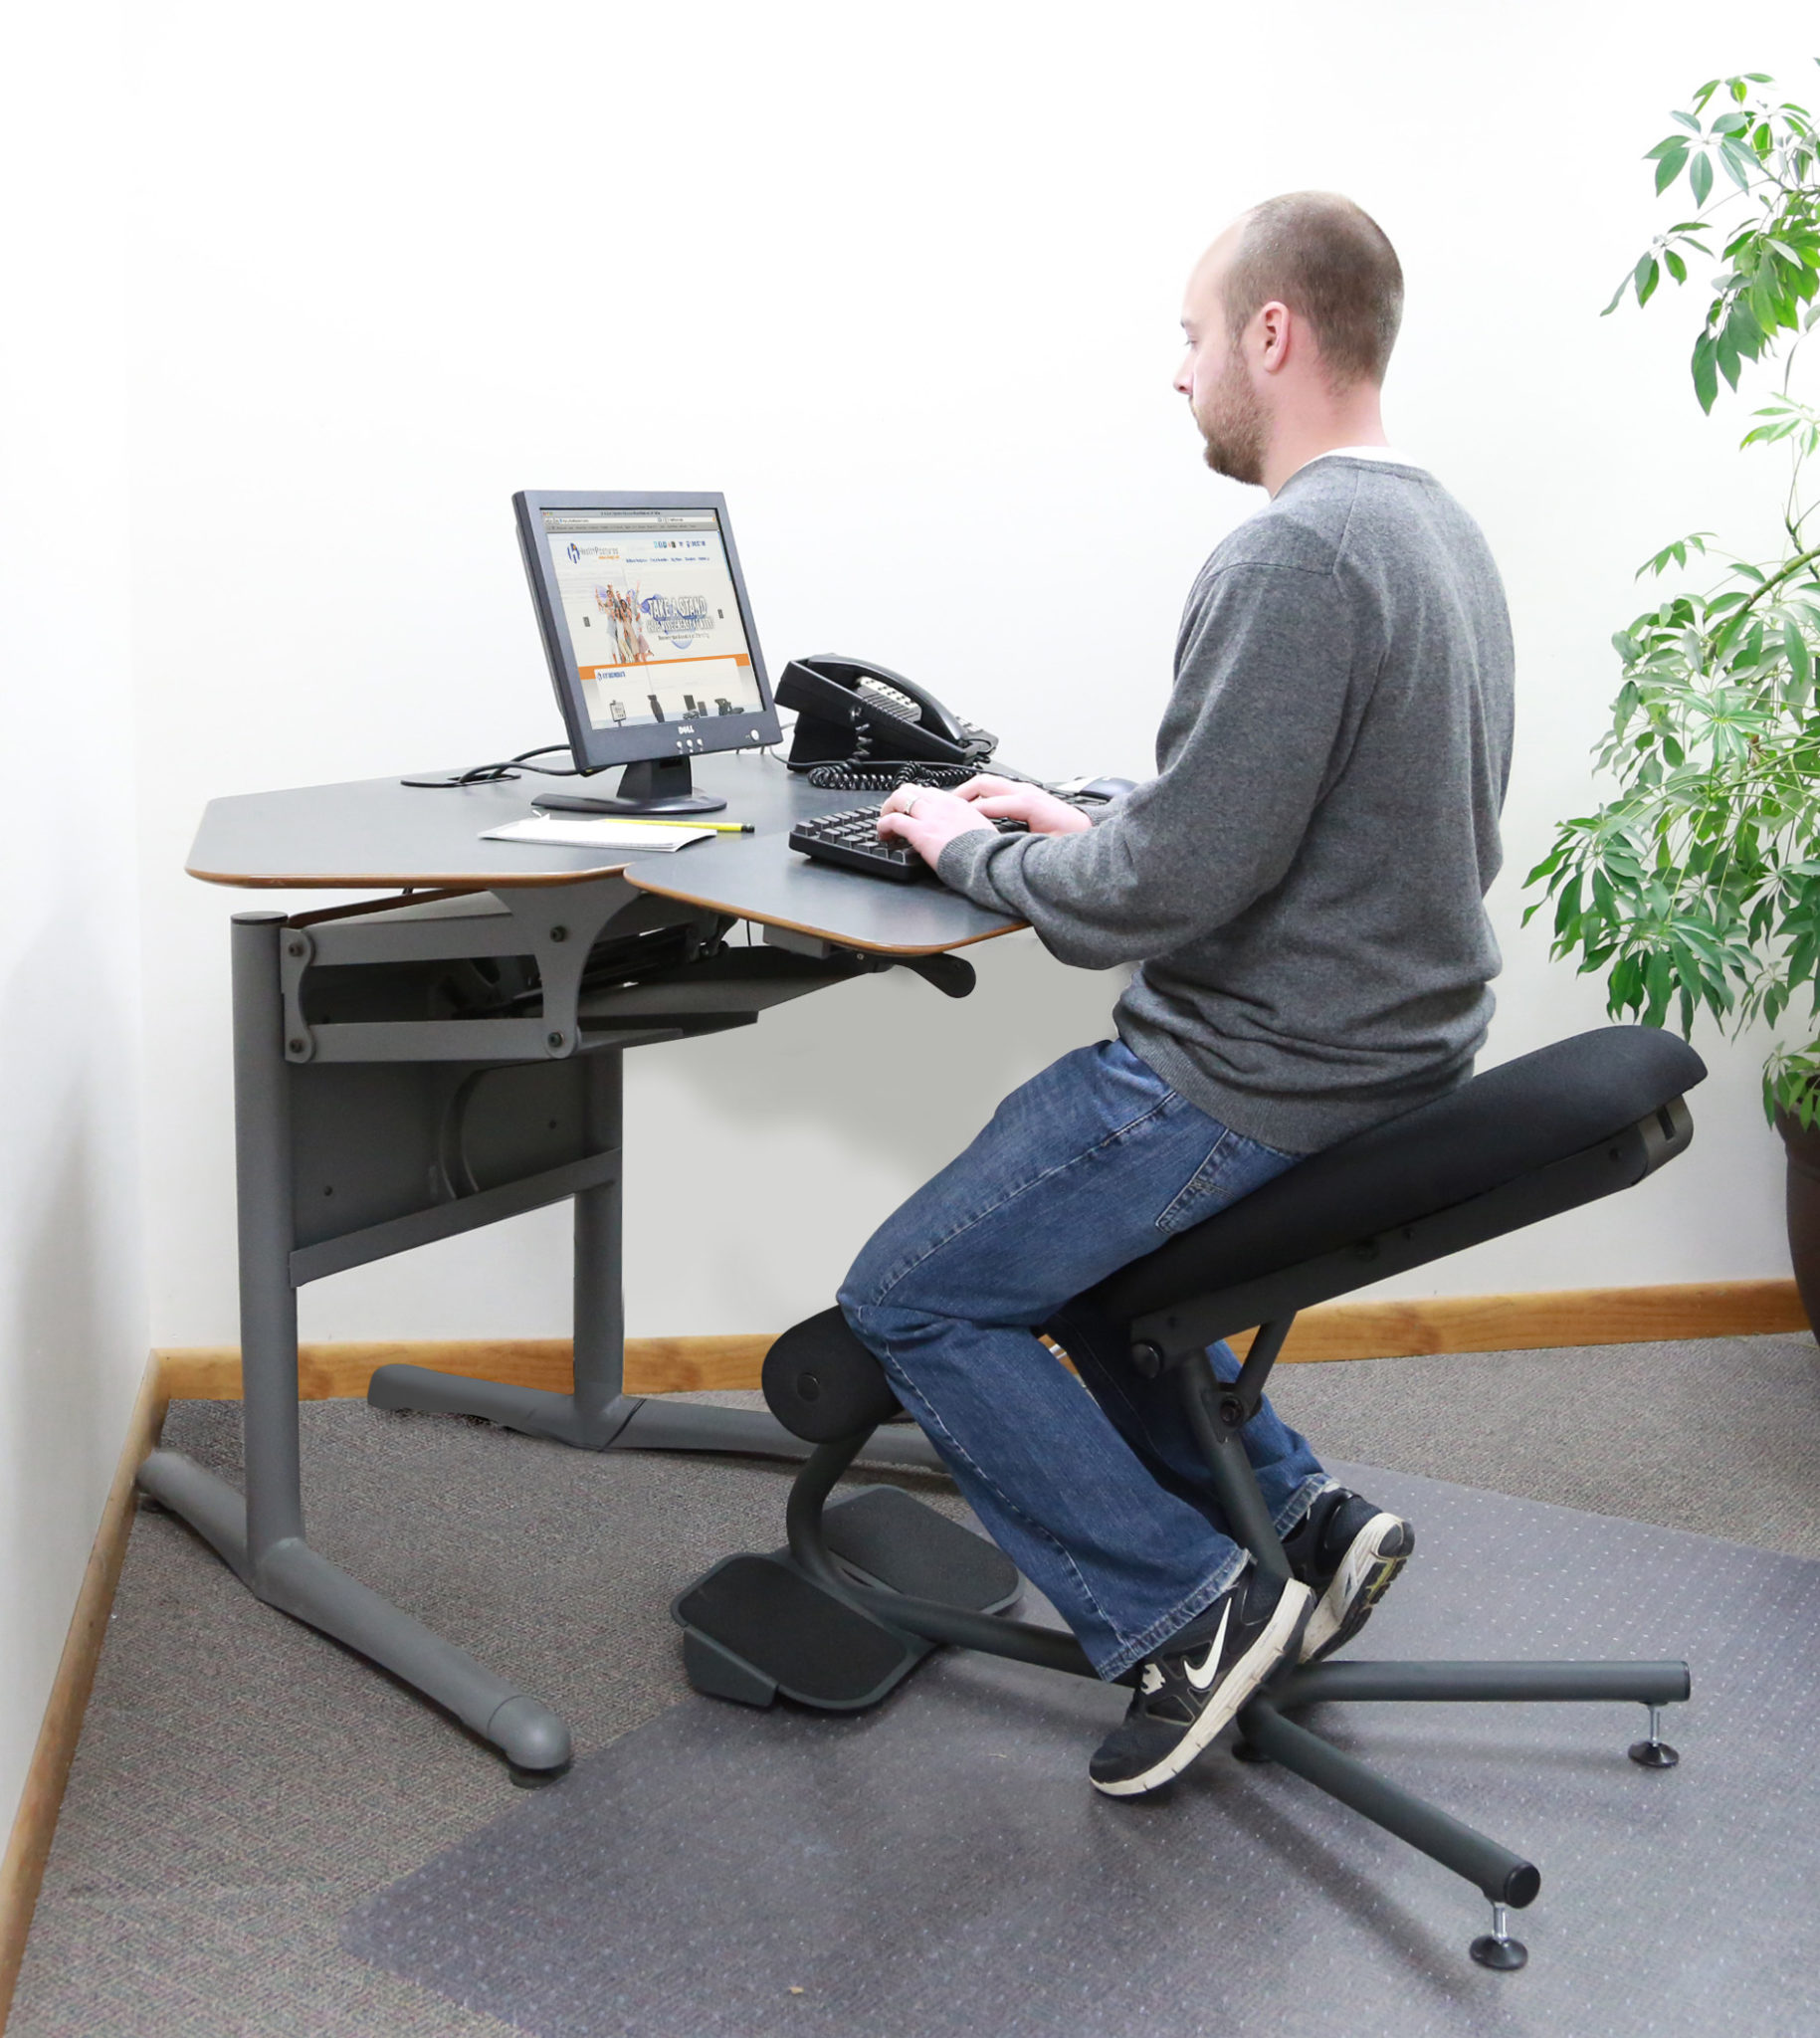 chair stand up cover hire wigan stance angle ergonomic standing healthpostures